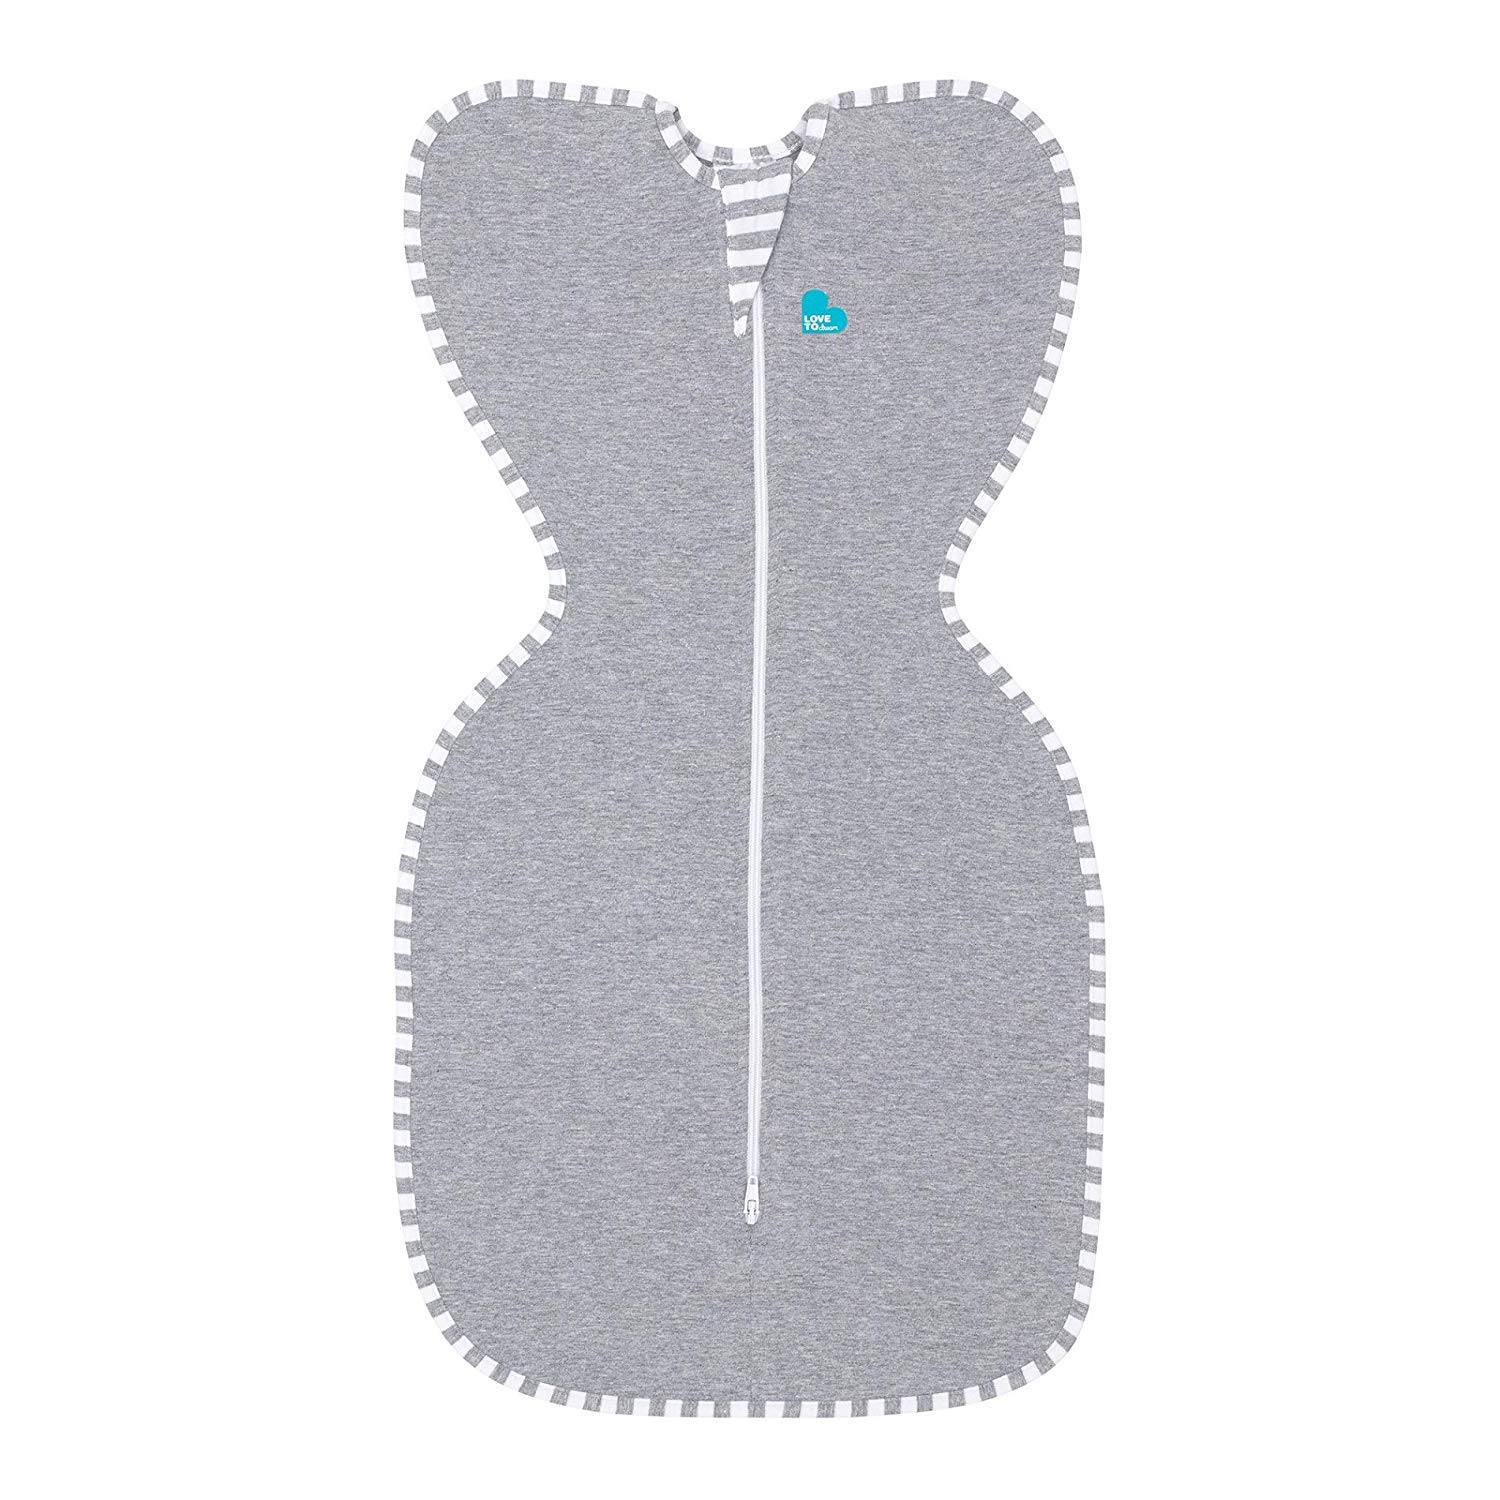 Love To Dream Swaddle UP Original 1.0 TOG, Gray, Small, 7-13 lbs.